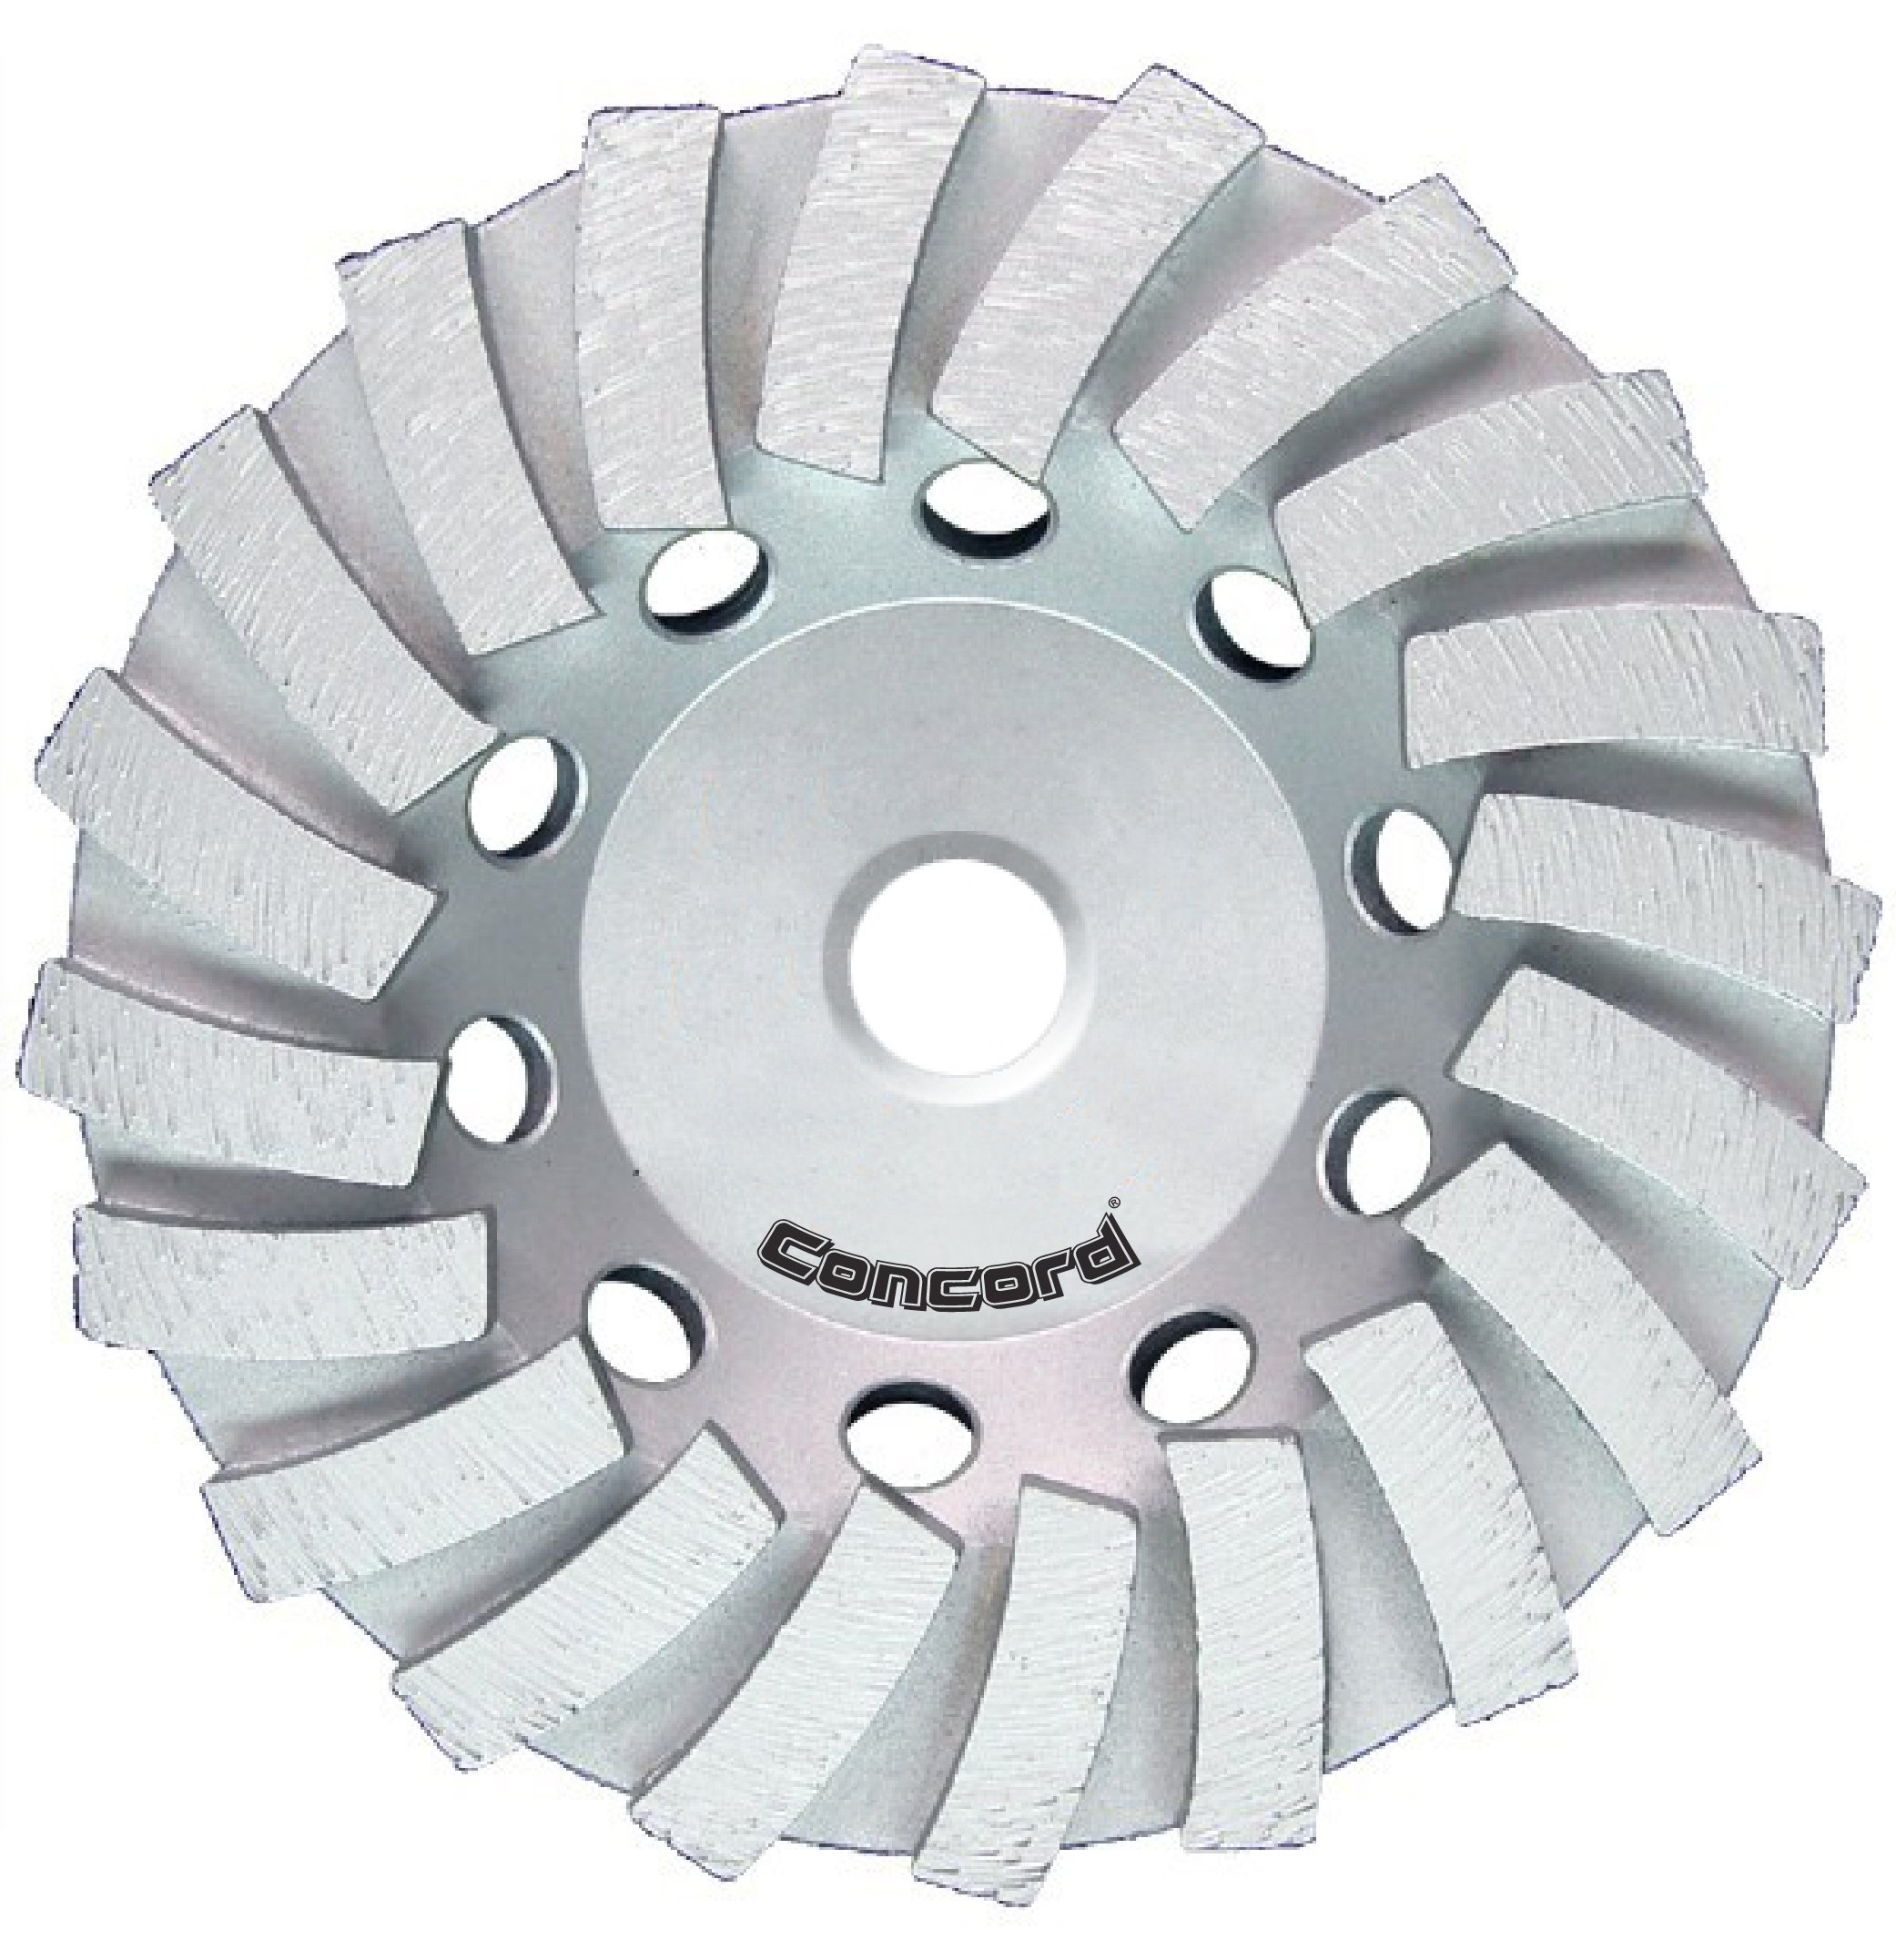 Concord Blades GCL045FCP 4.5 Inch Swirl Turbo Diamond Cup Wheel with 5/8''-11 Thread by Concord Blades